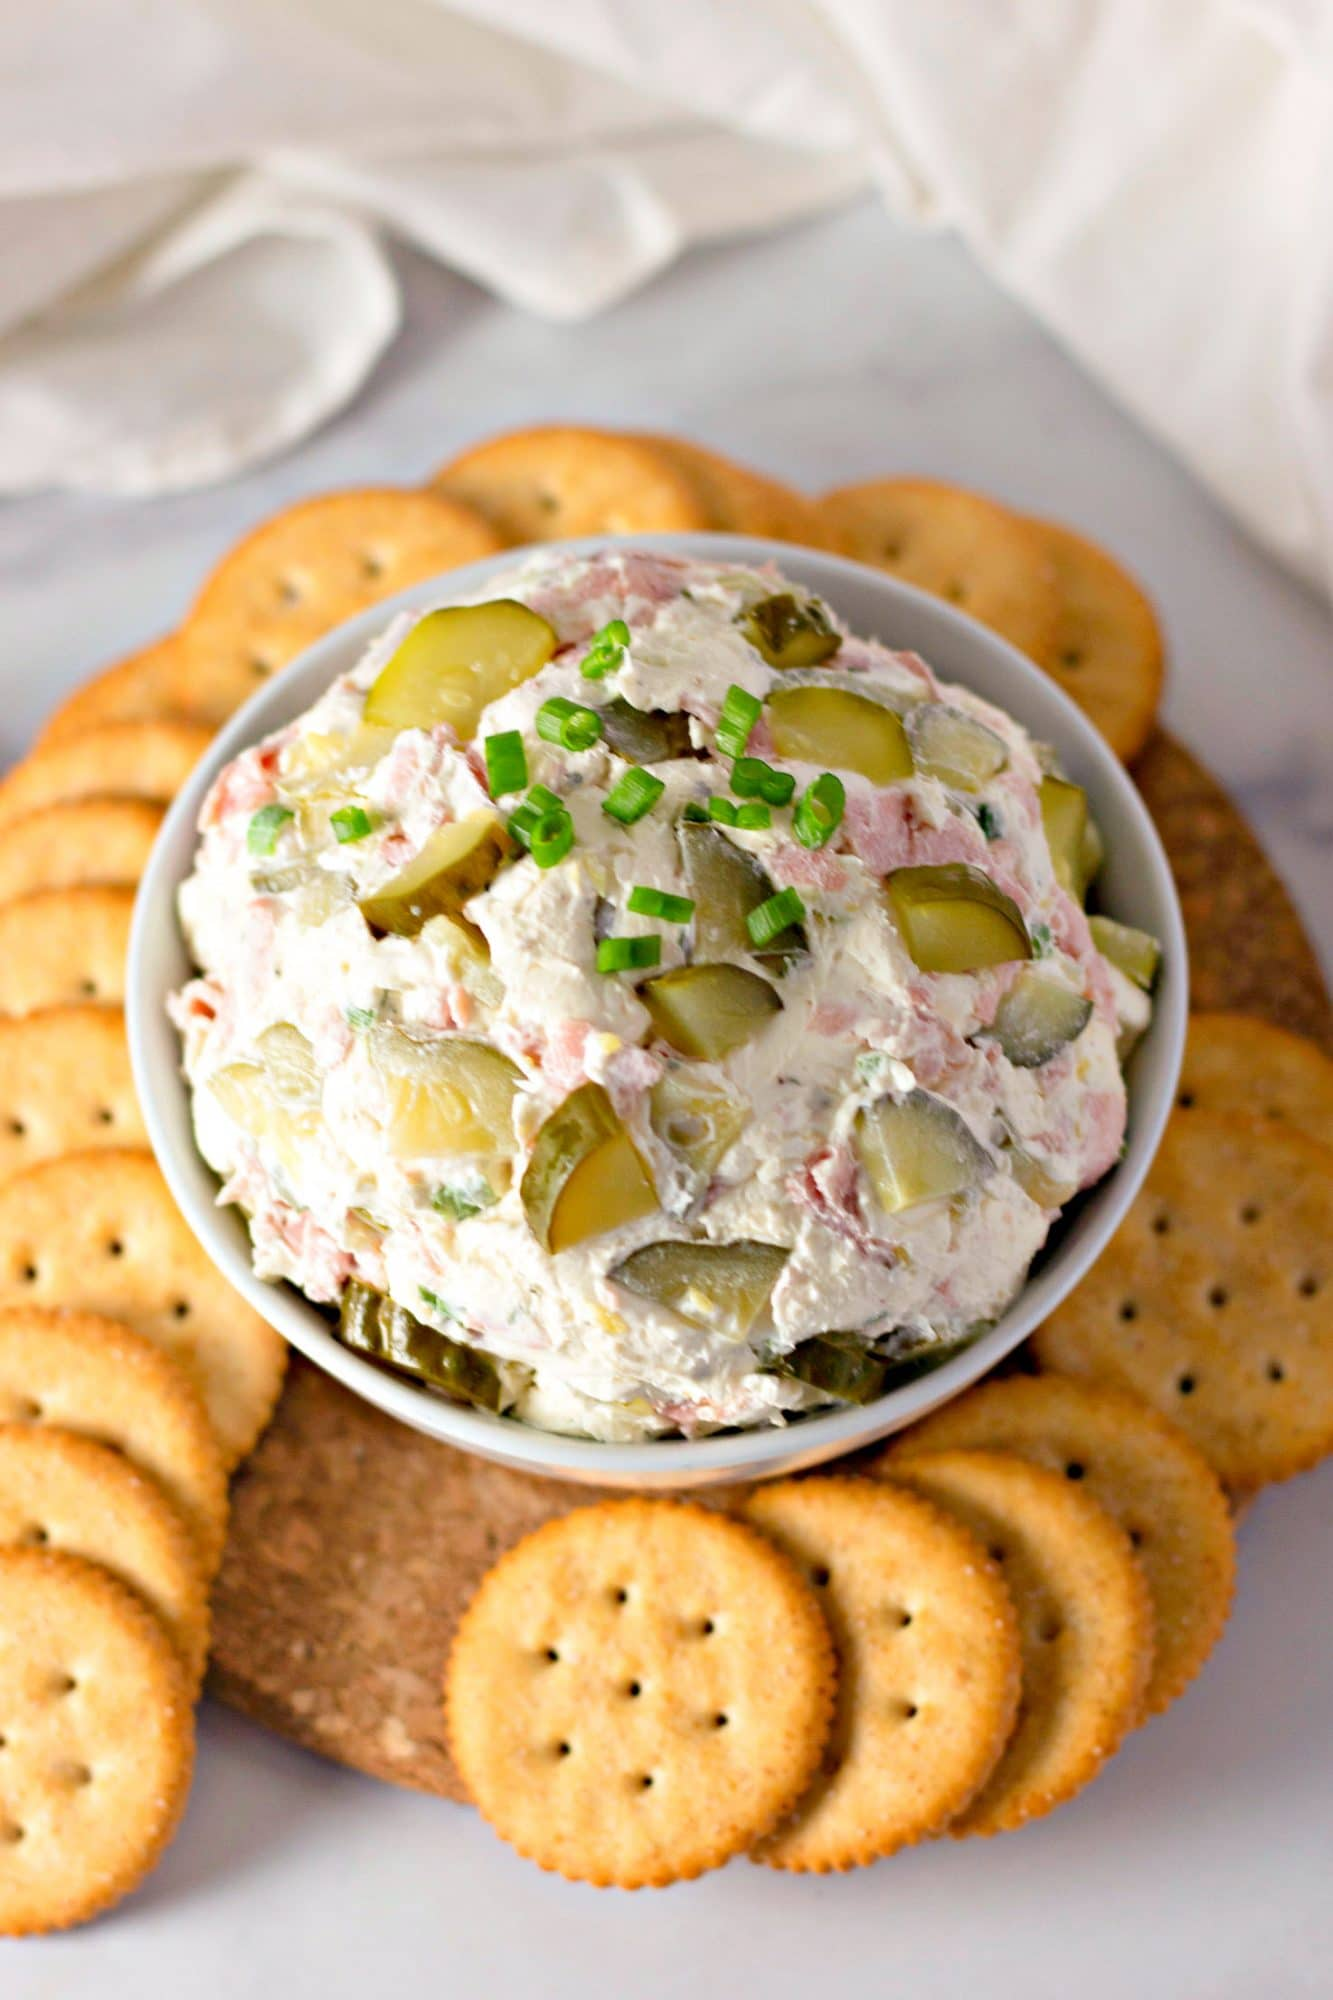 dill pickle dip in white bowl with crackers on plate